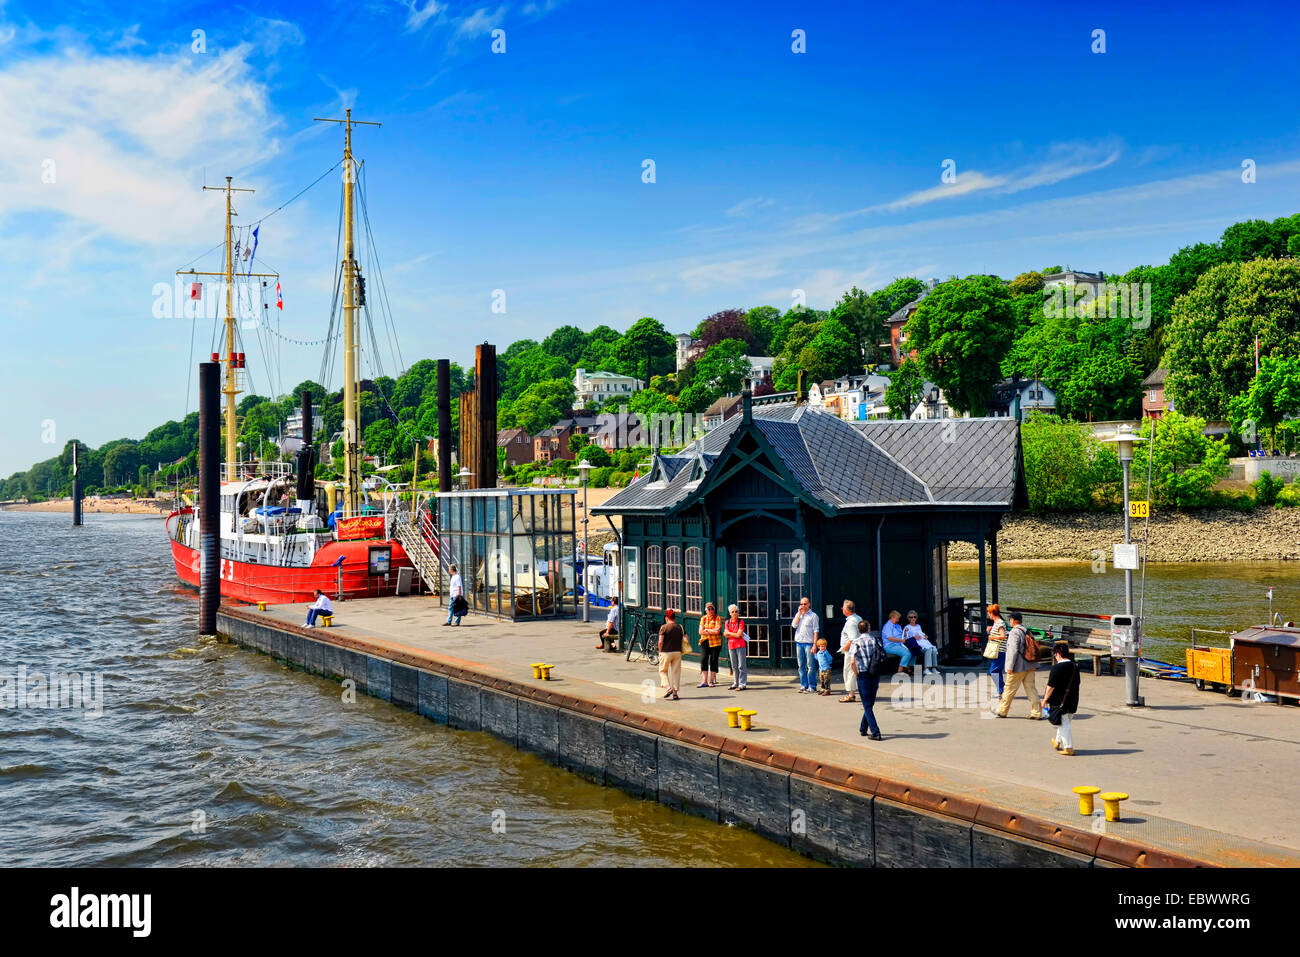 museum harbour Oevelgoenne and riverside of the Elbe in Othmarschen part of Hamburg, Germany, Hamburg - Stock Image